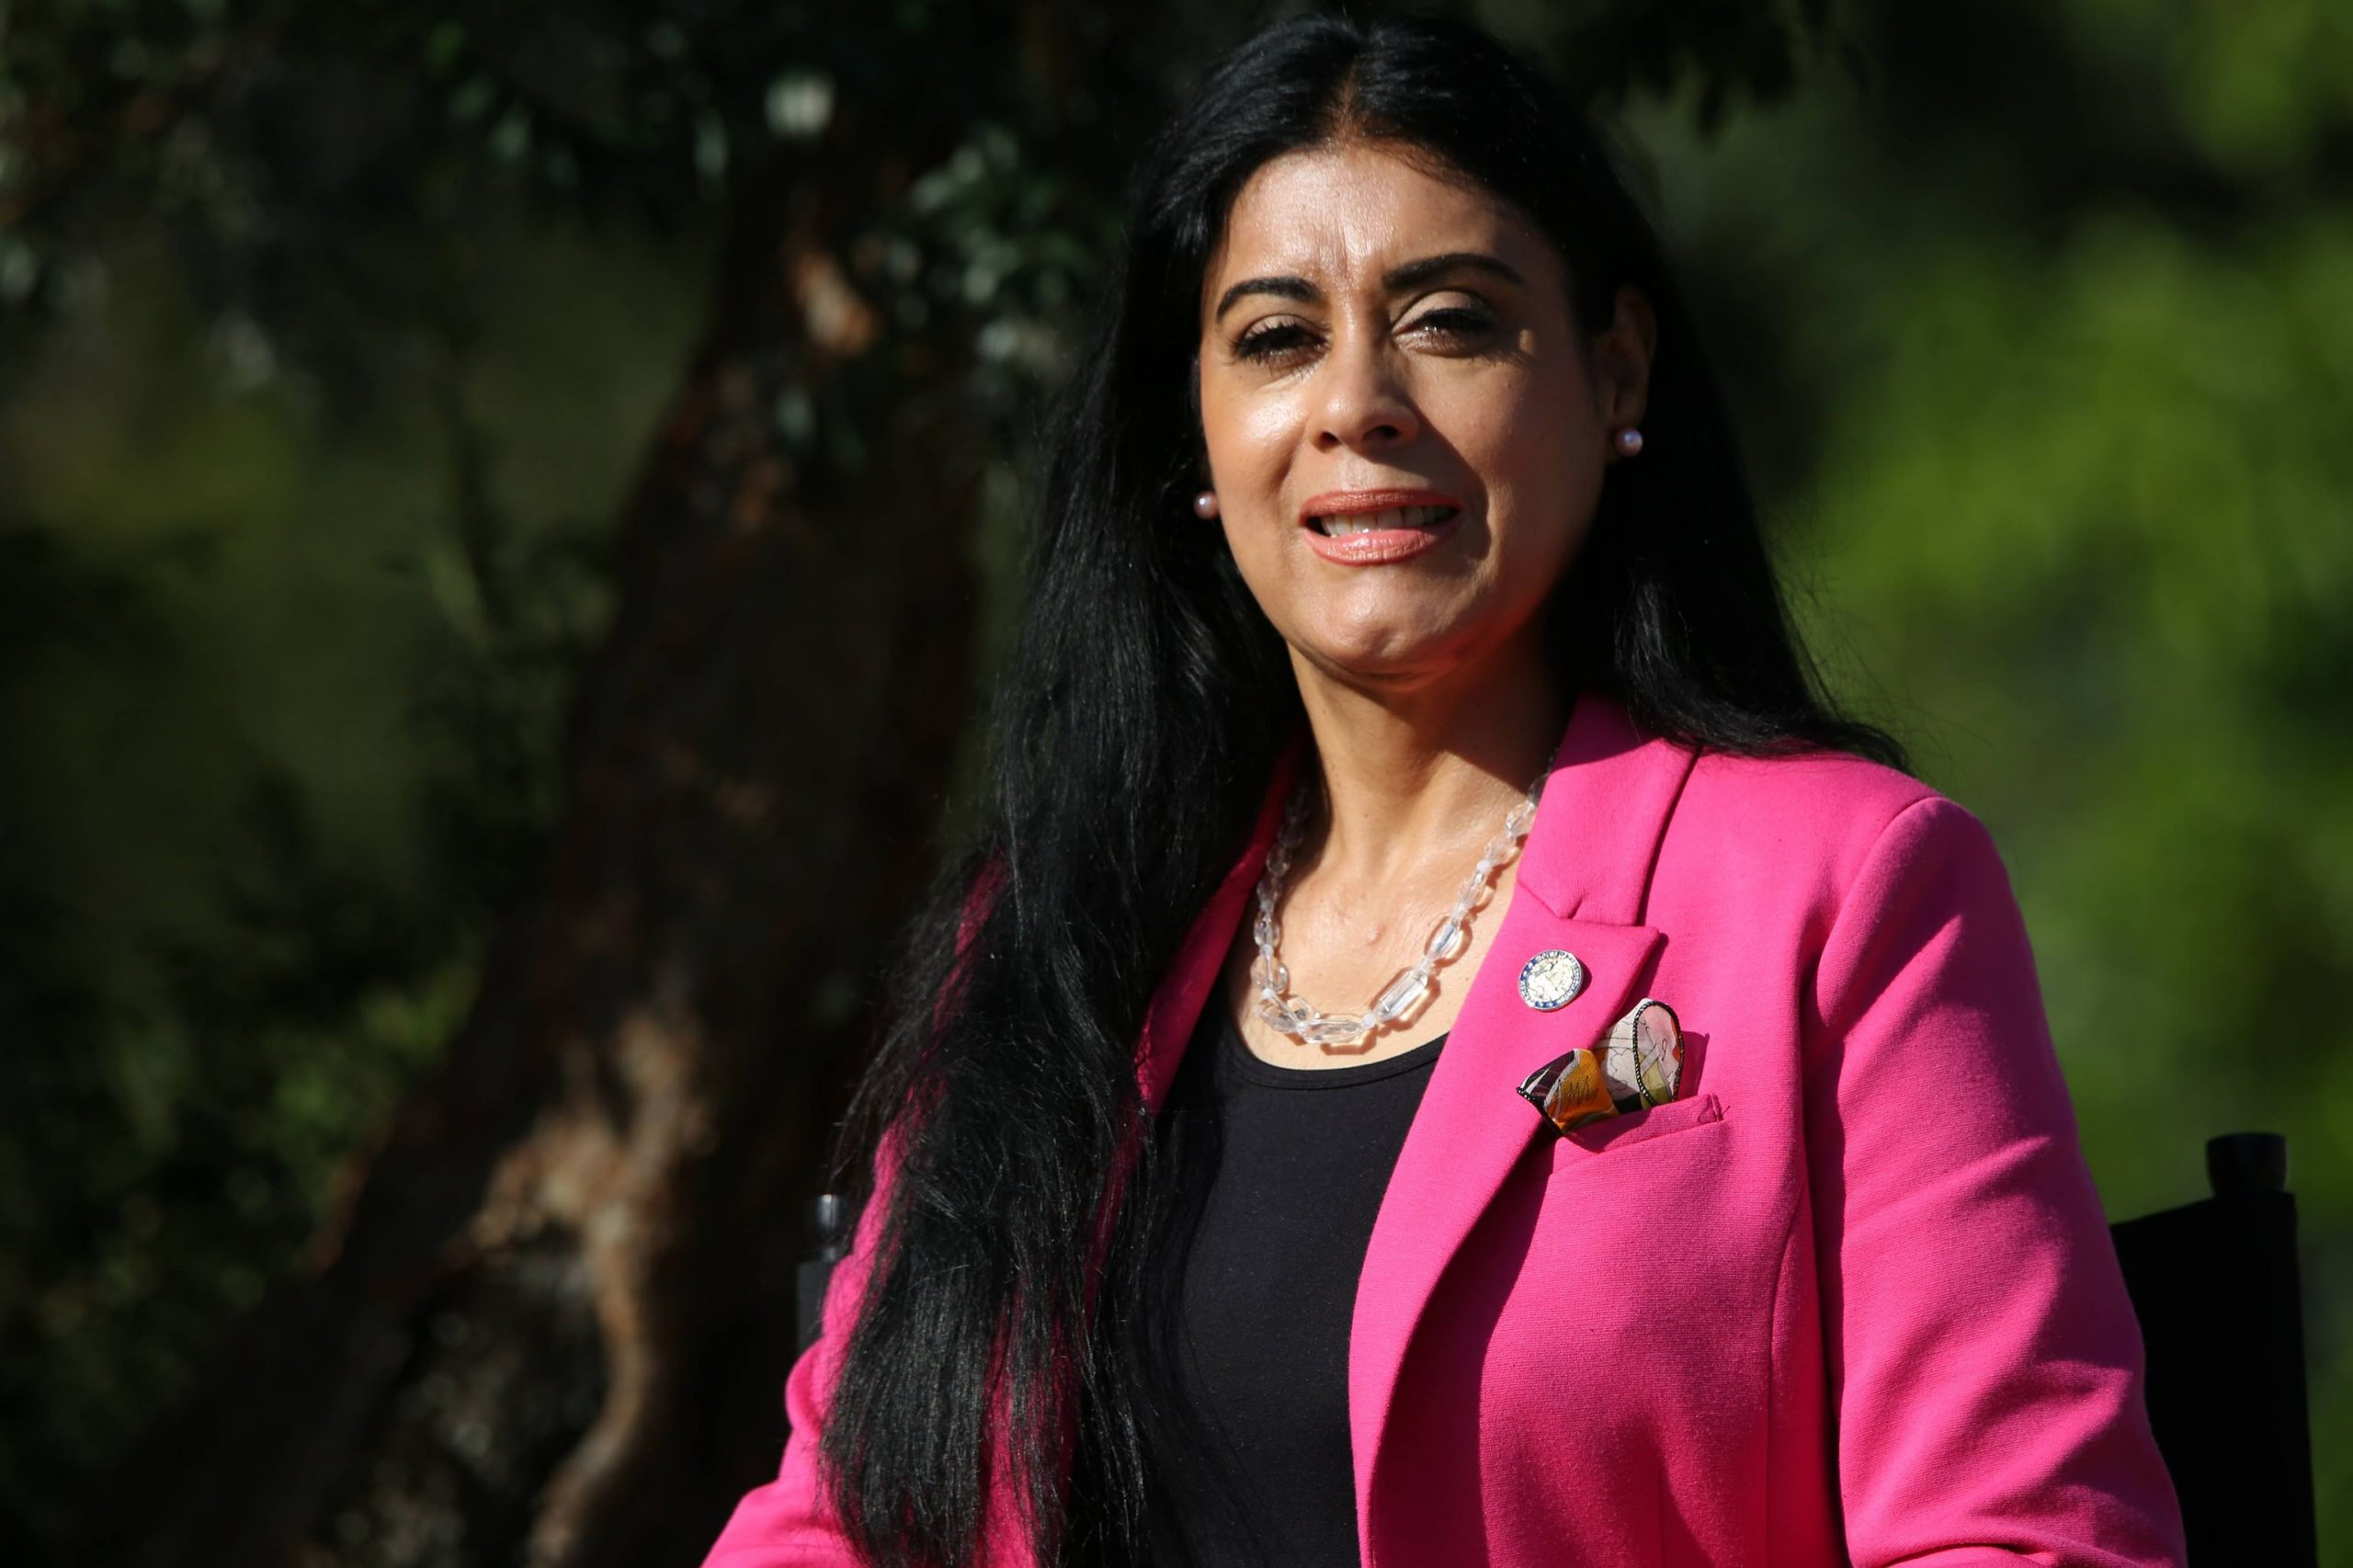 State Representative Daisy Morales tallies nearly 60 bills signed into law during the 2021 Legislative Session, the most of any member in the Florida House. Photo courtesy of State Rep. Morales.